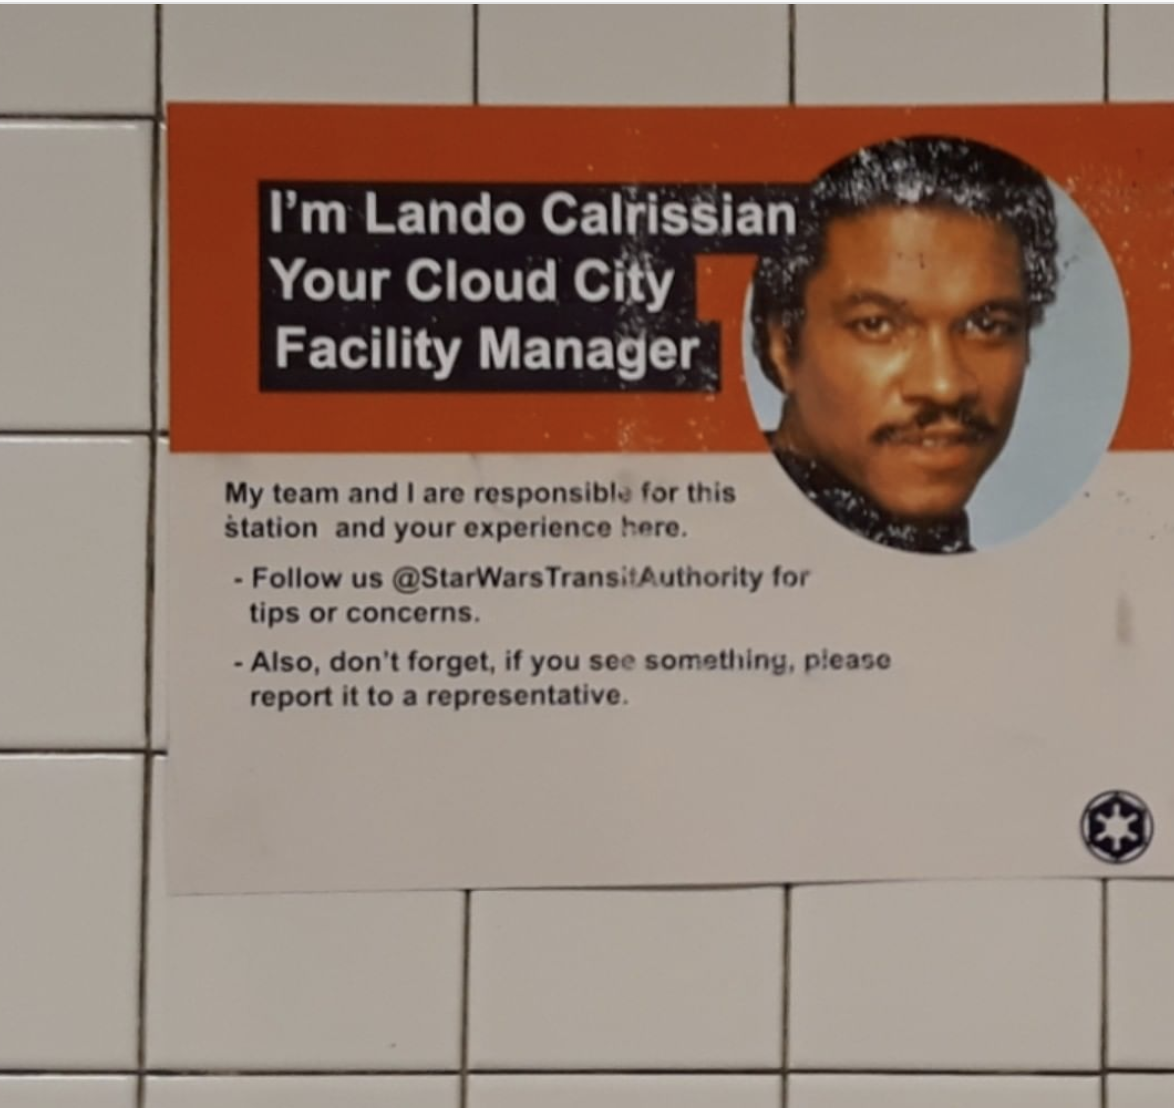 poster inside of an MTA subway station with an image of a black man titled